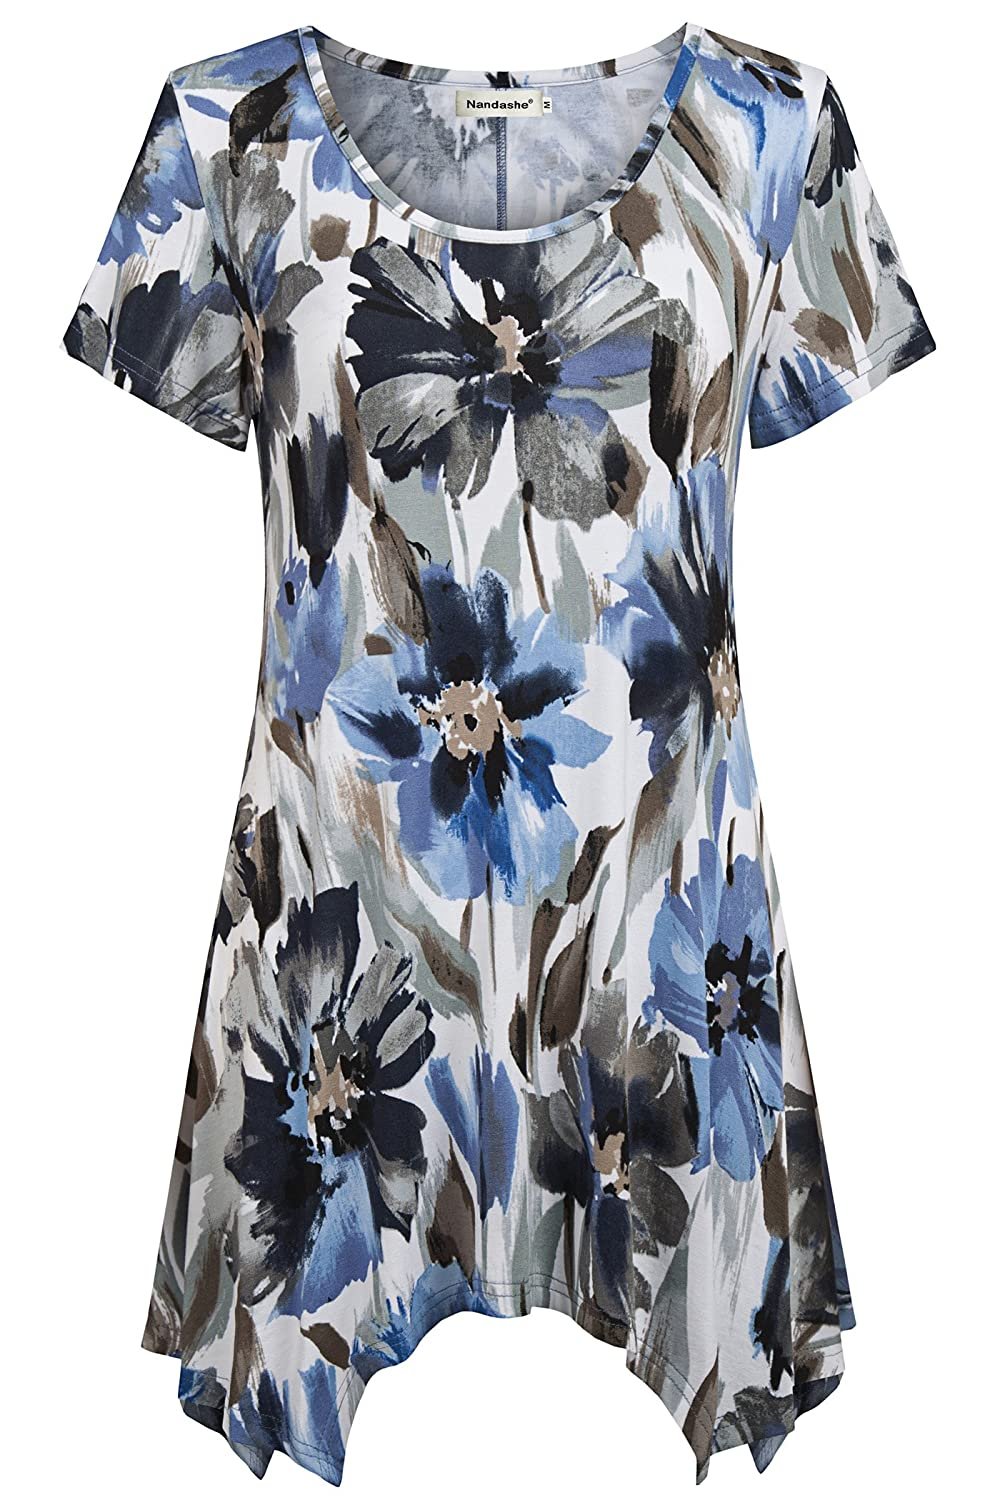 Nandashe Women Short Sleeves Tunic Shirts Casual Scoop Neck Floral Irregular Hem Blouses Tops